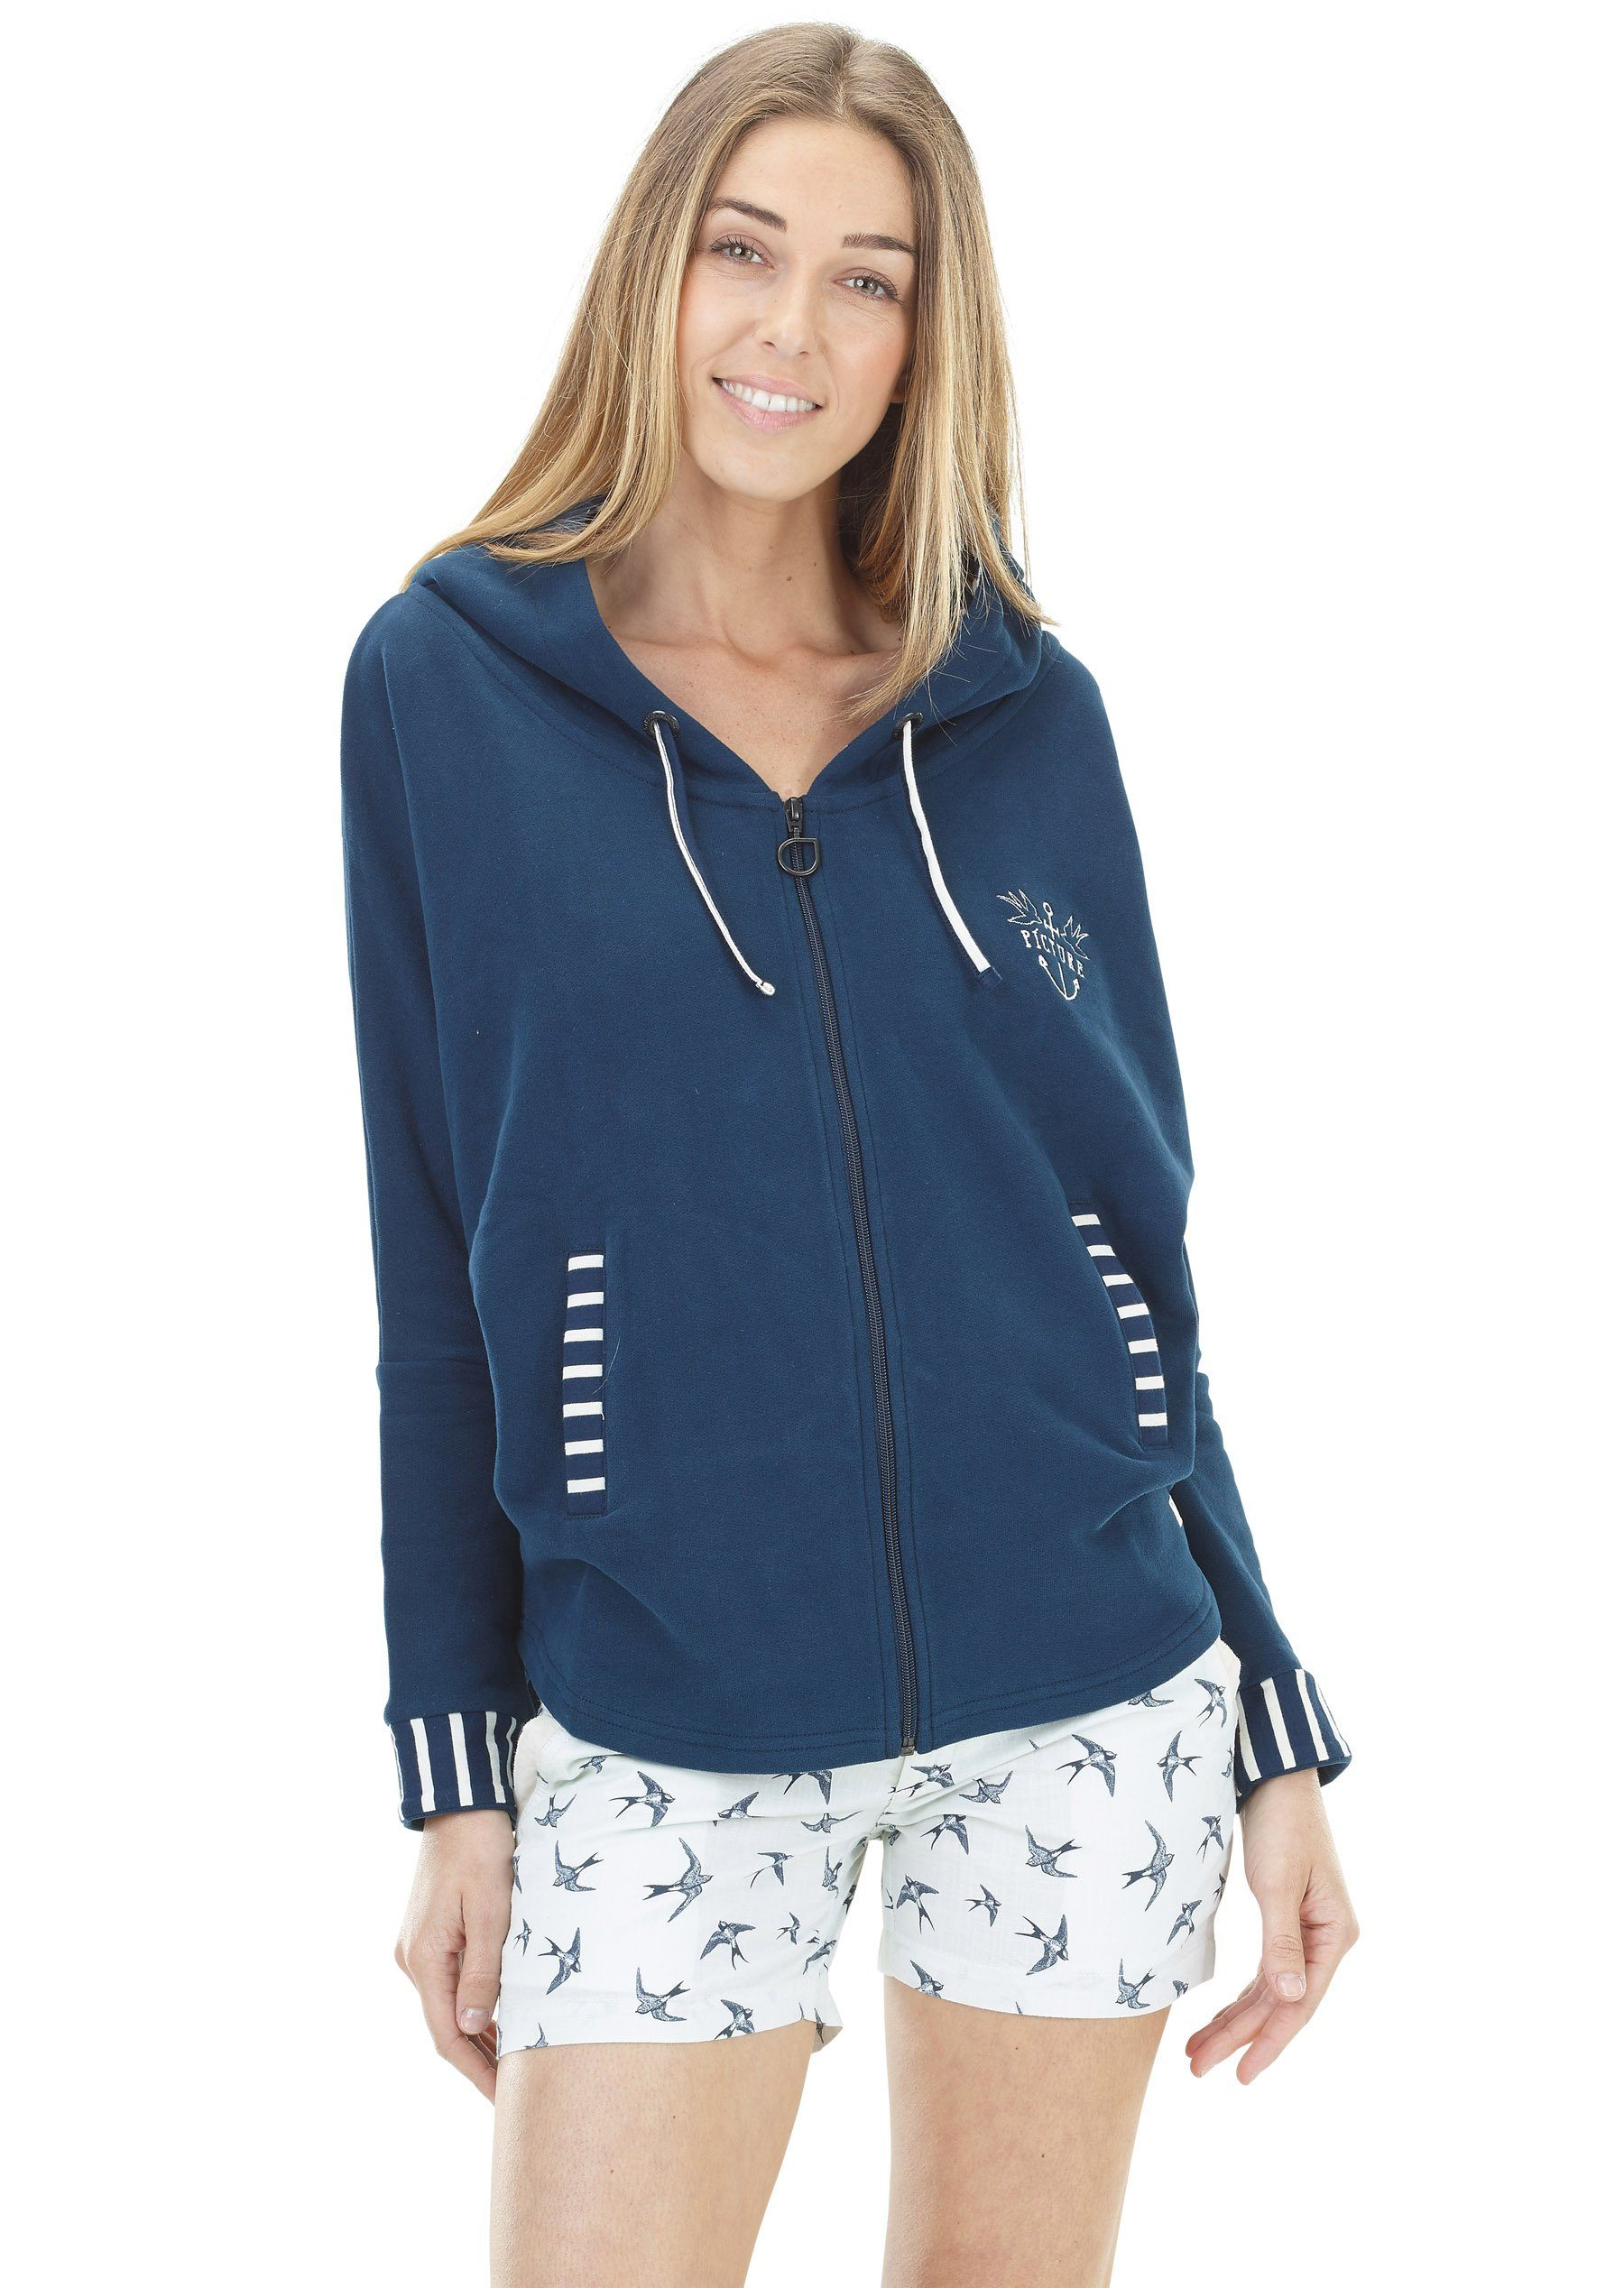 Picture Organic - Women's Alloa Hoodie - 100% Organic Cotton - Dark Blue - Weekendbee - sustainable sportswear